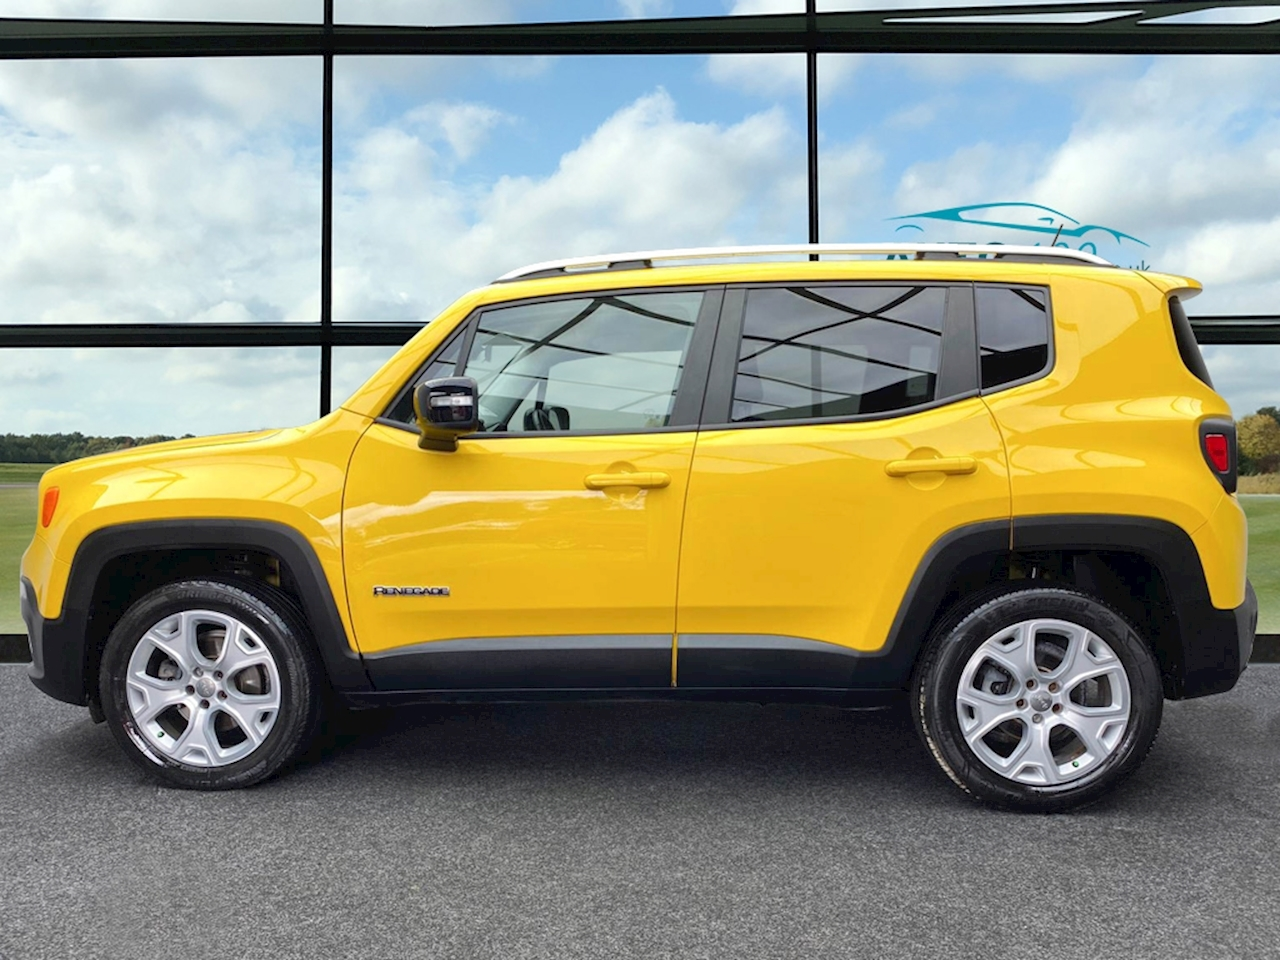 Jeep Renegade Renegade 2.0 Mj 140hp 4wd Auto Low Ltd Estate 2.0 Automatic Diesel